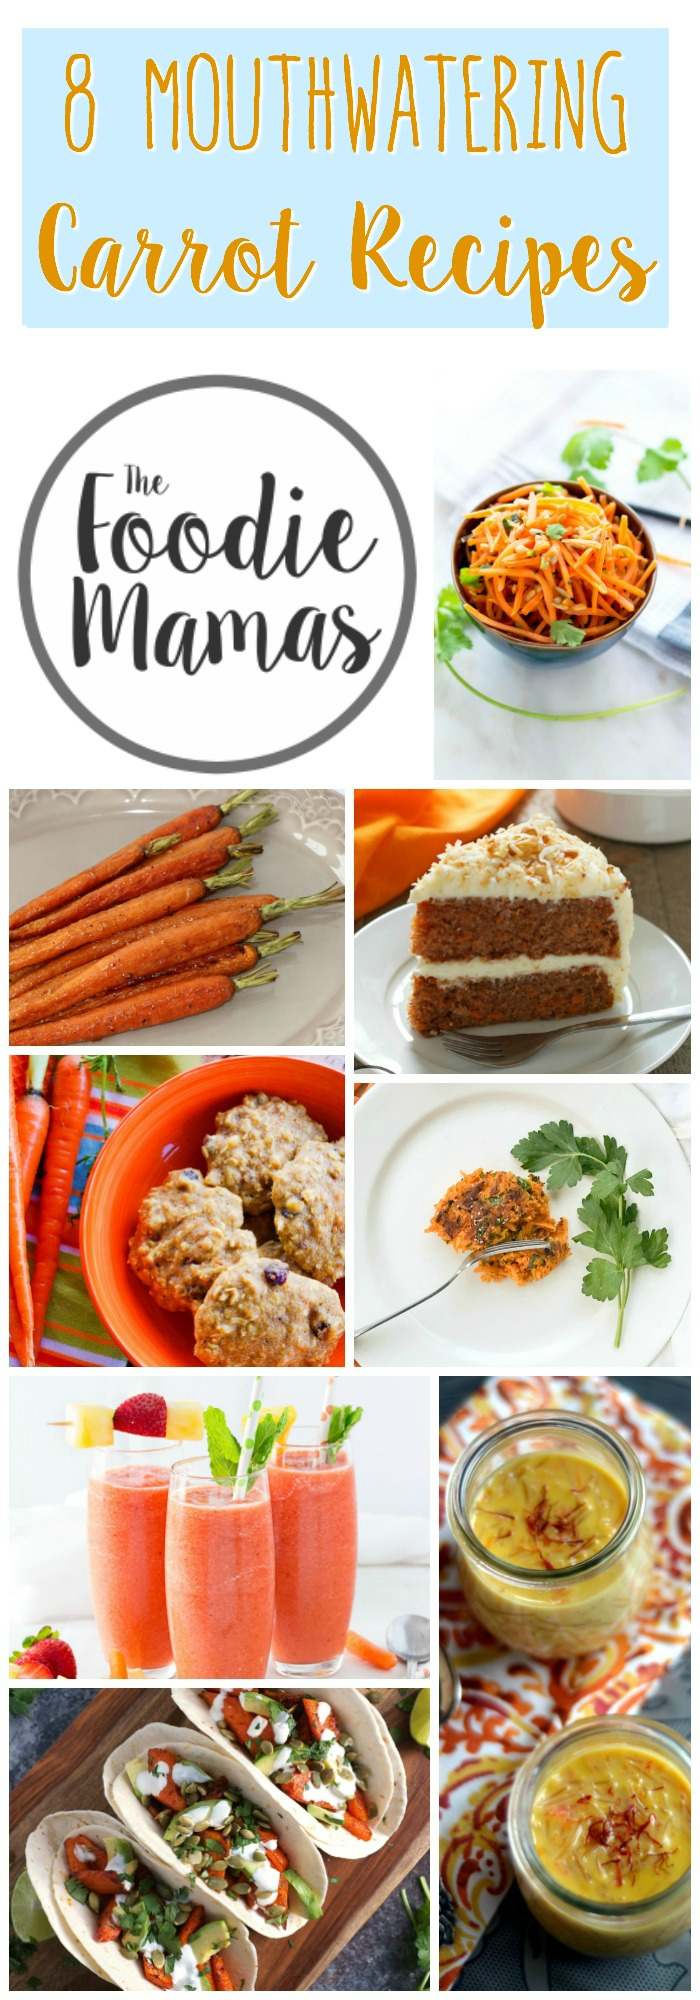 8 Mouthwatering Carrot Recipes | www.homeandplate.com | Delicious recipes for breakfast, lunch, dinner, and dessert using carrots from the #FoodieMamas!